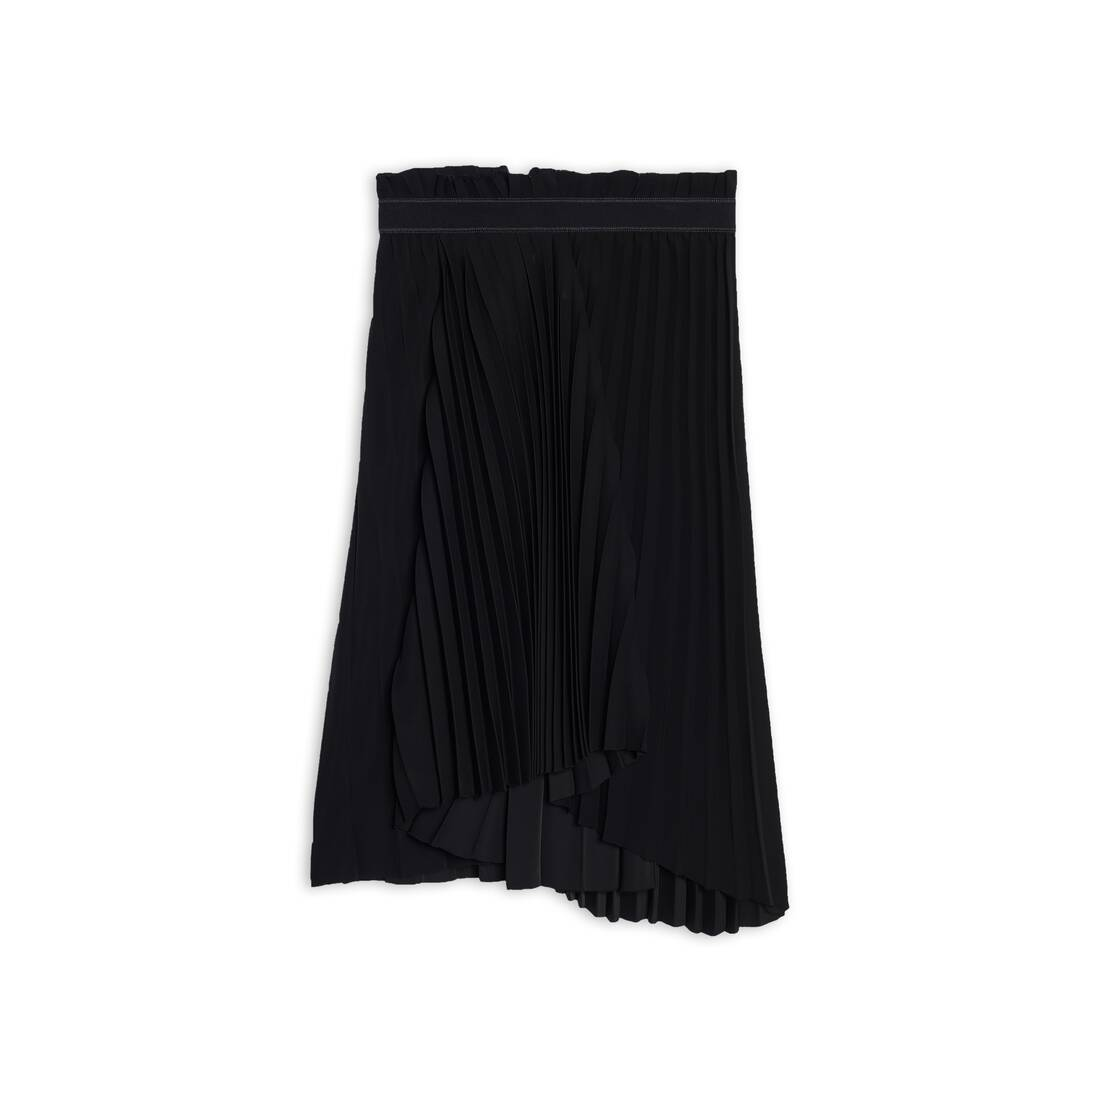 Display zoomed version of fancy pleated skirt 1